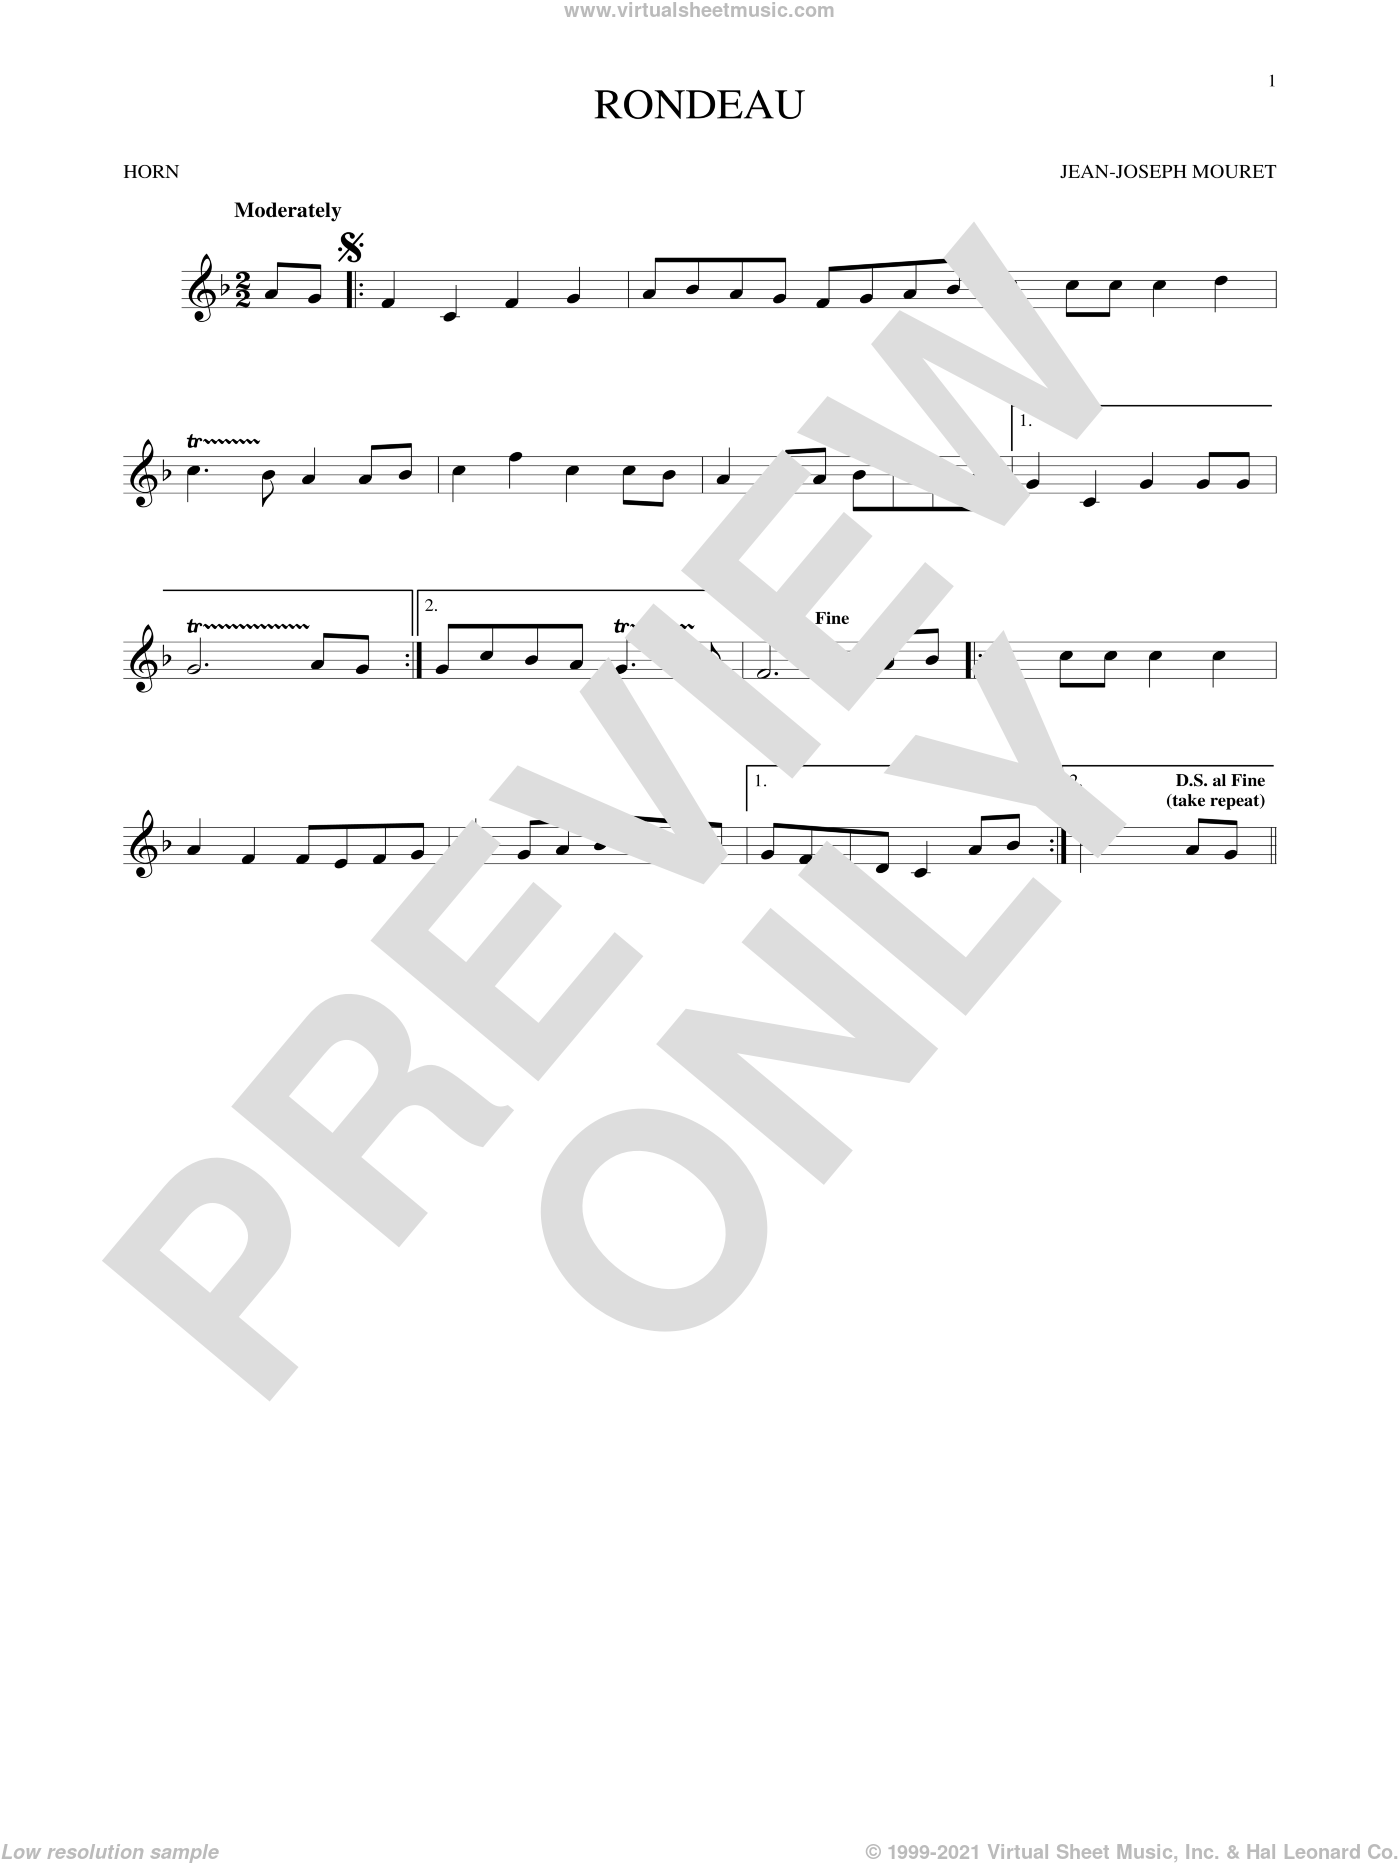 Fanfare Rondeau sheet music for horn solo by Jean-Joseph Mouret, classical score, intermediate skill level